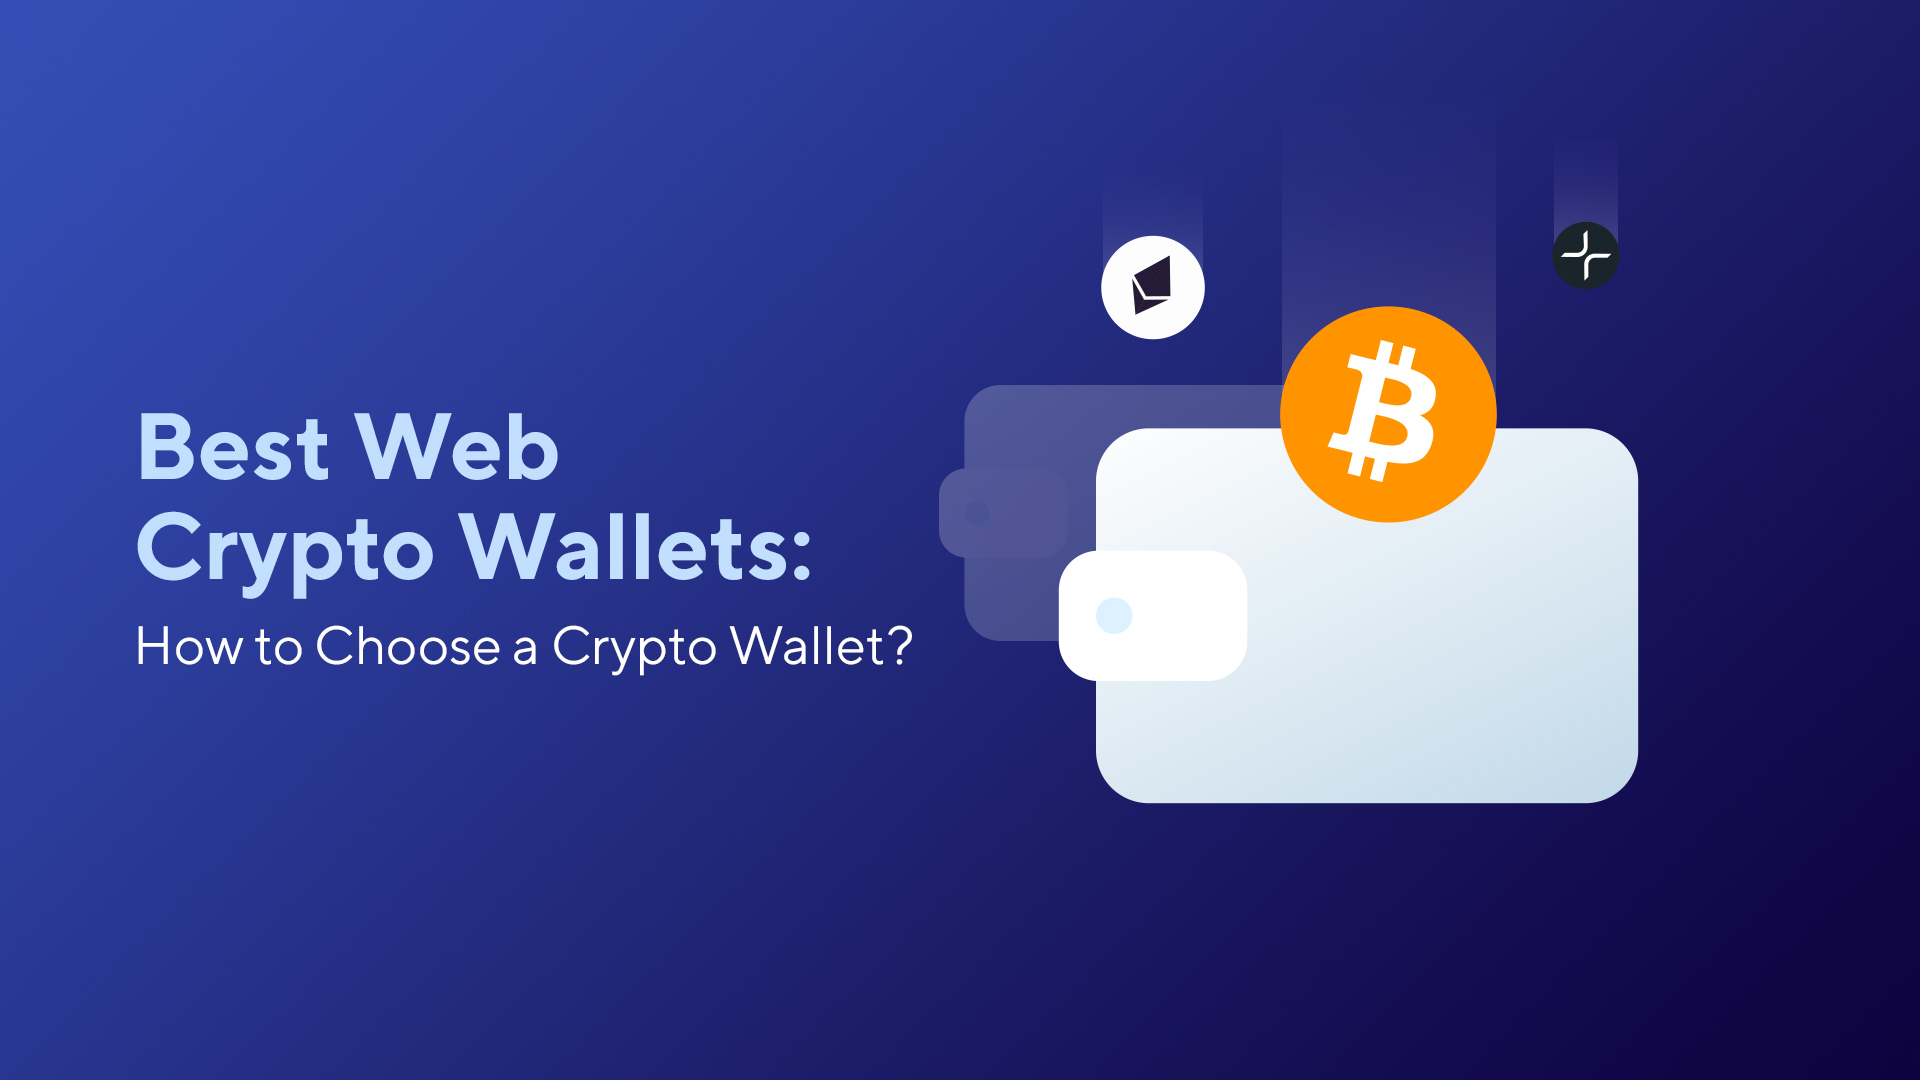 Best Web Crypto Wallets: How to Choose a Crypto Wallet?